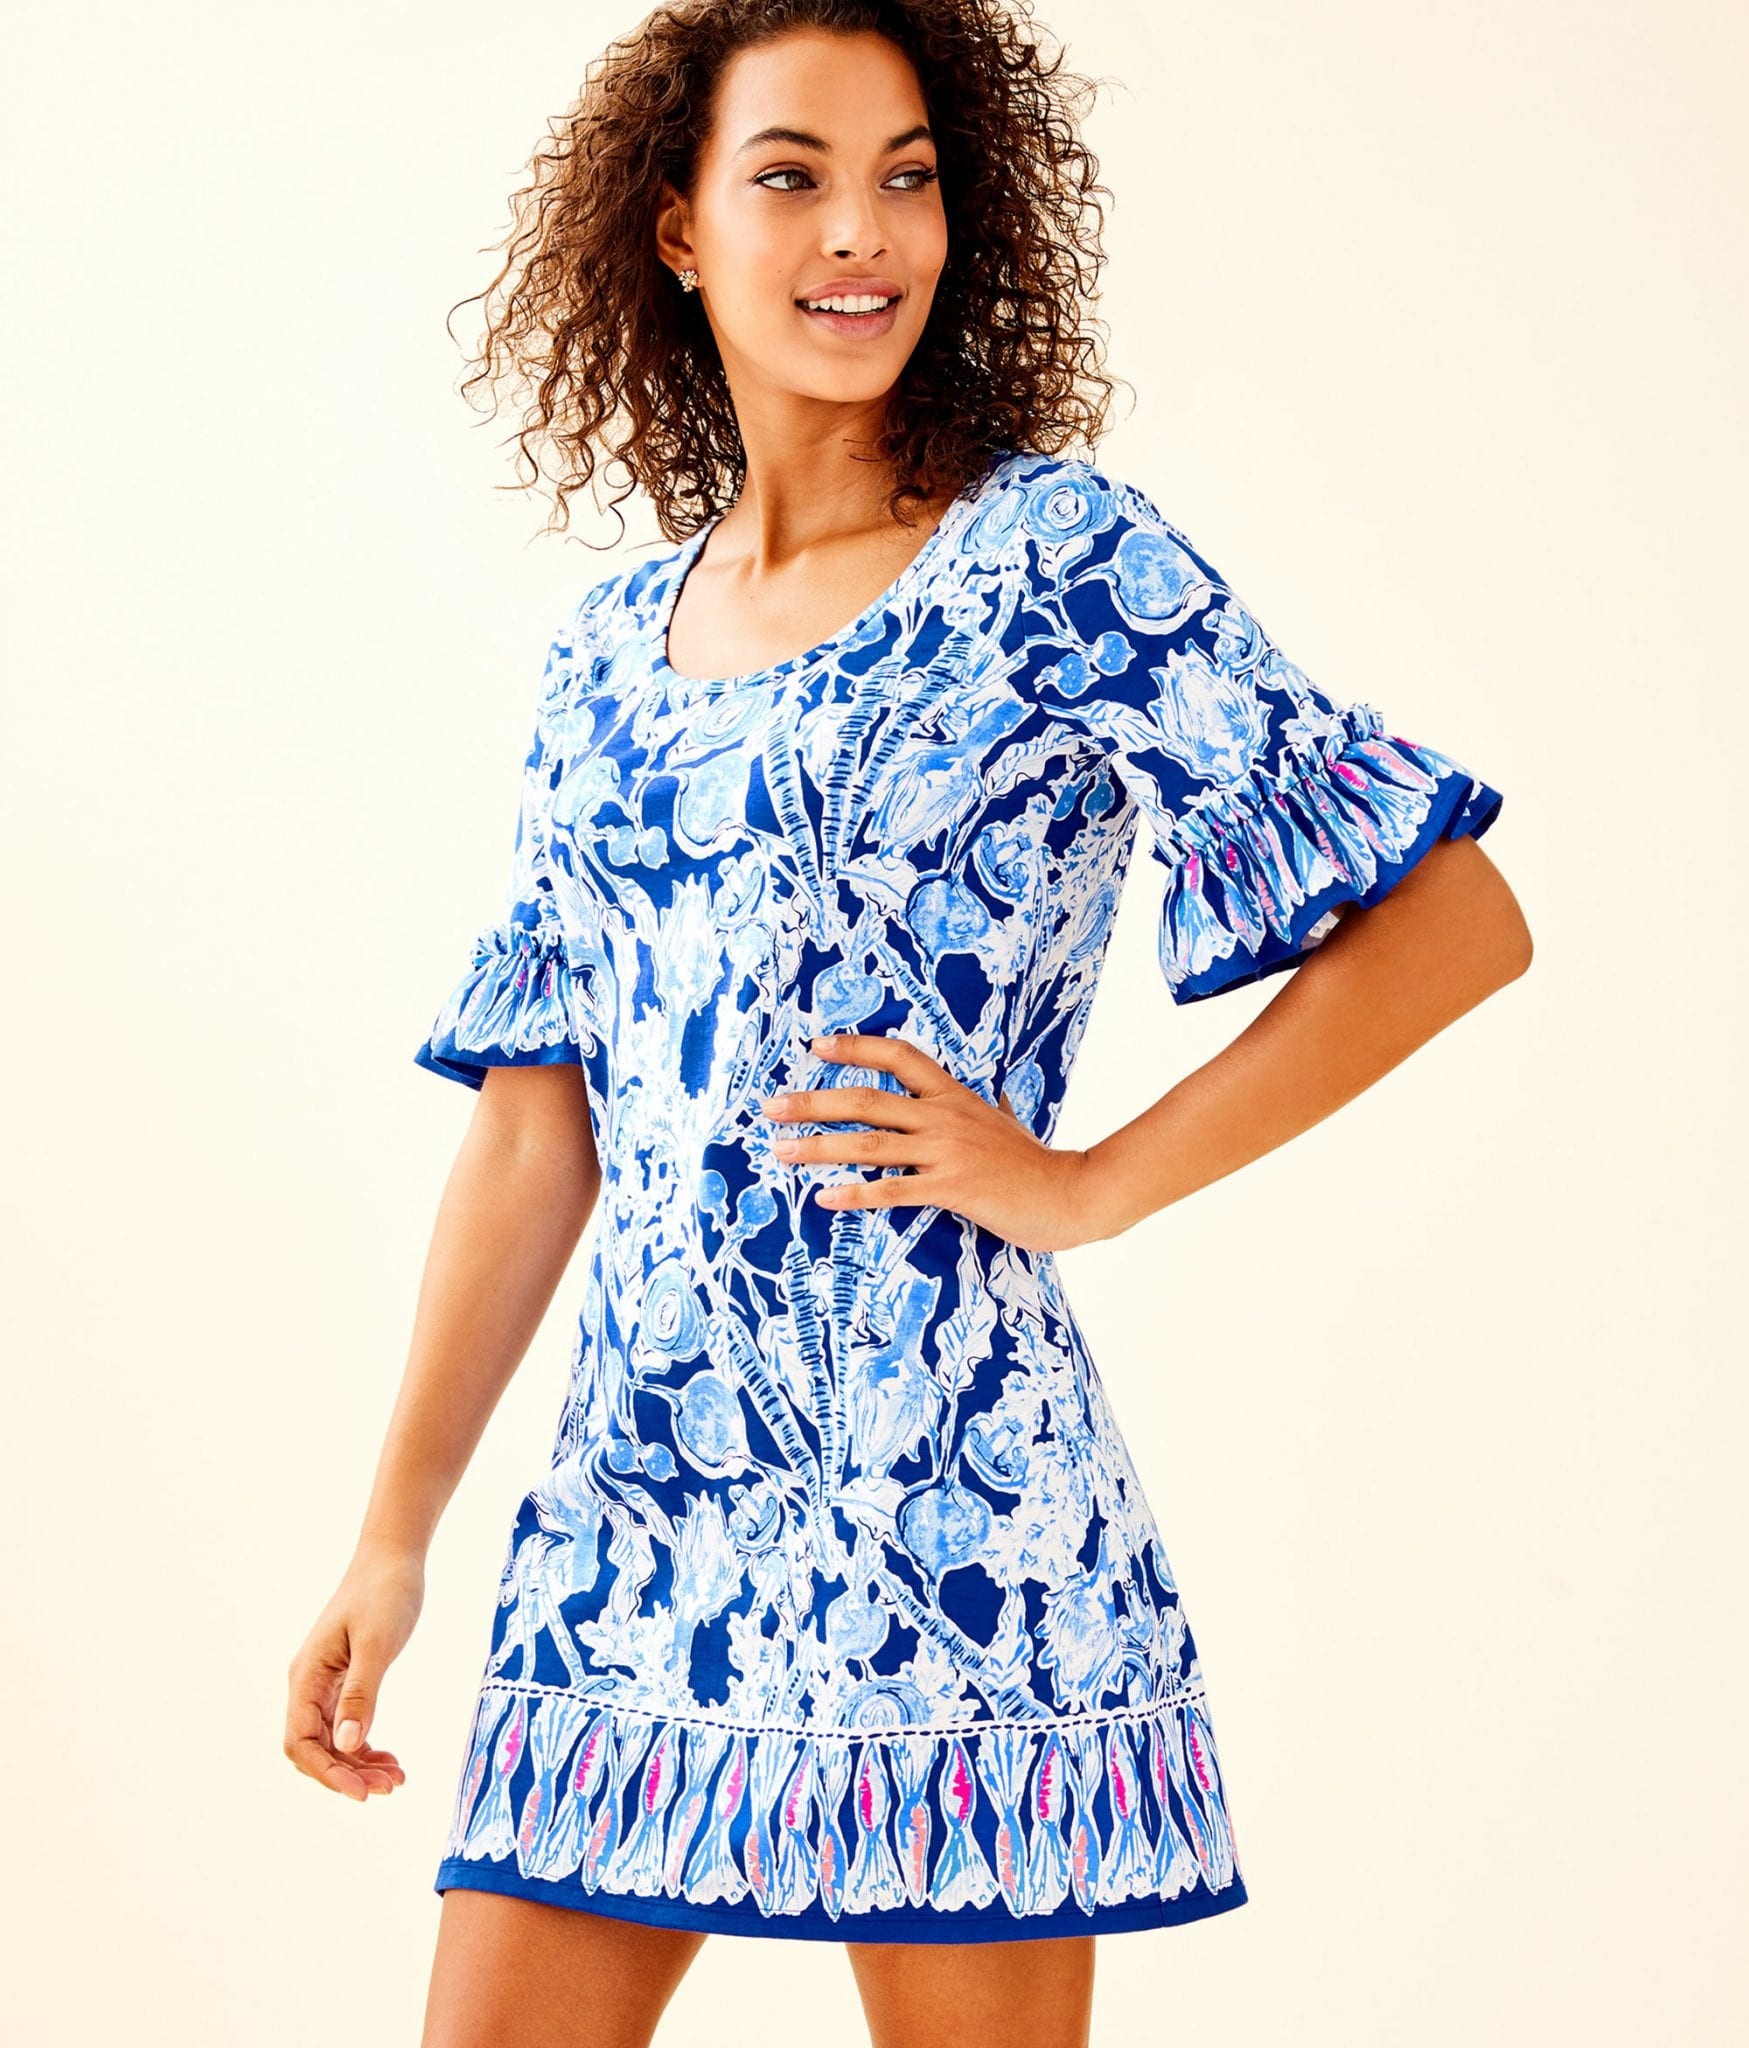 d76f9aad782 JAYDEN DRESS - PRETTY PEAS ENGINEERED - Lilly Pulitzer Store ...